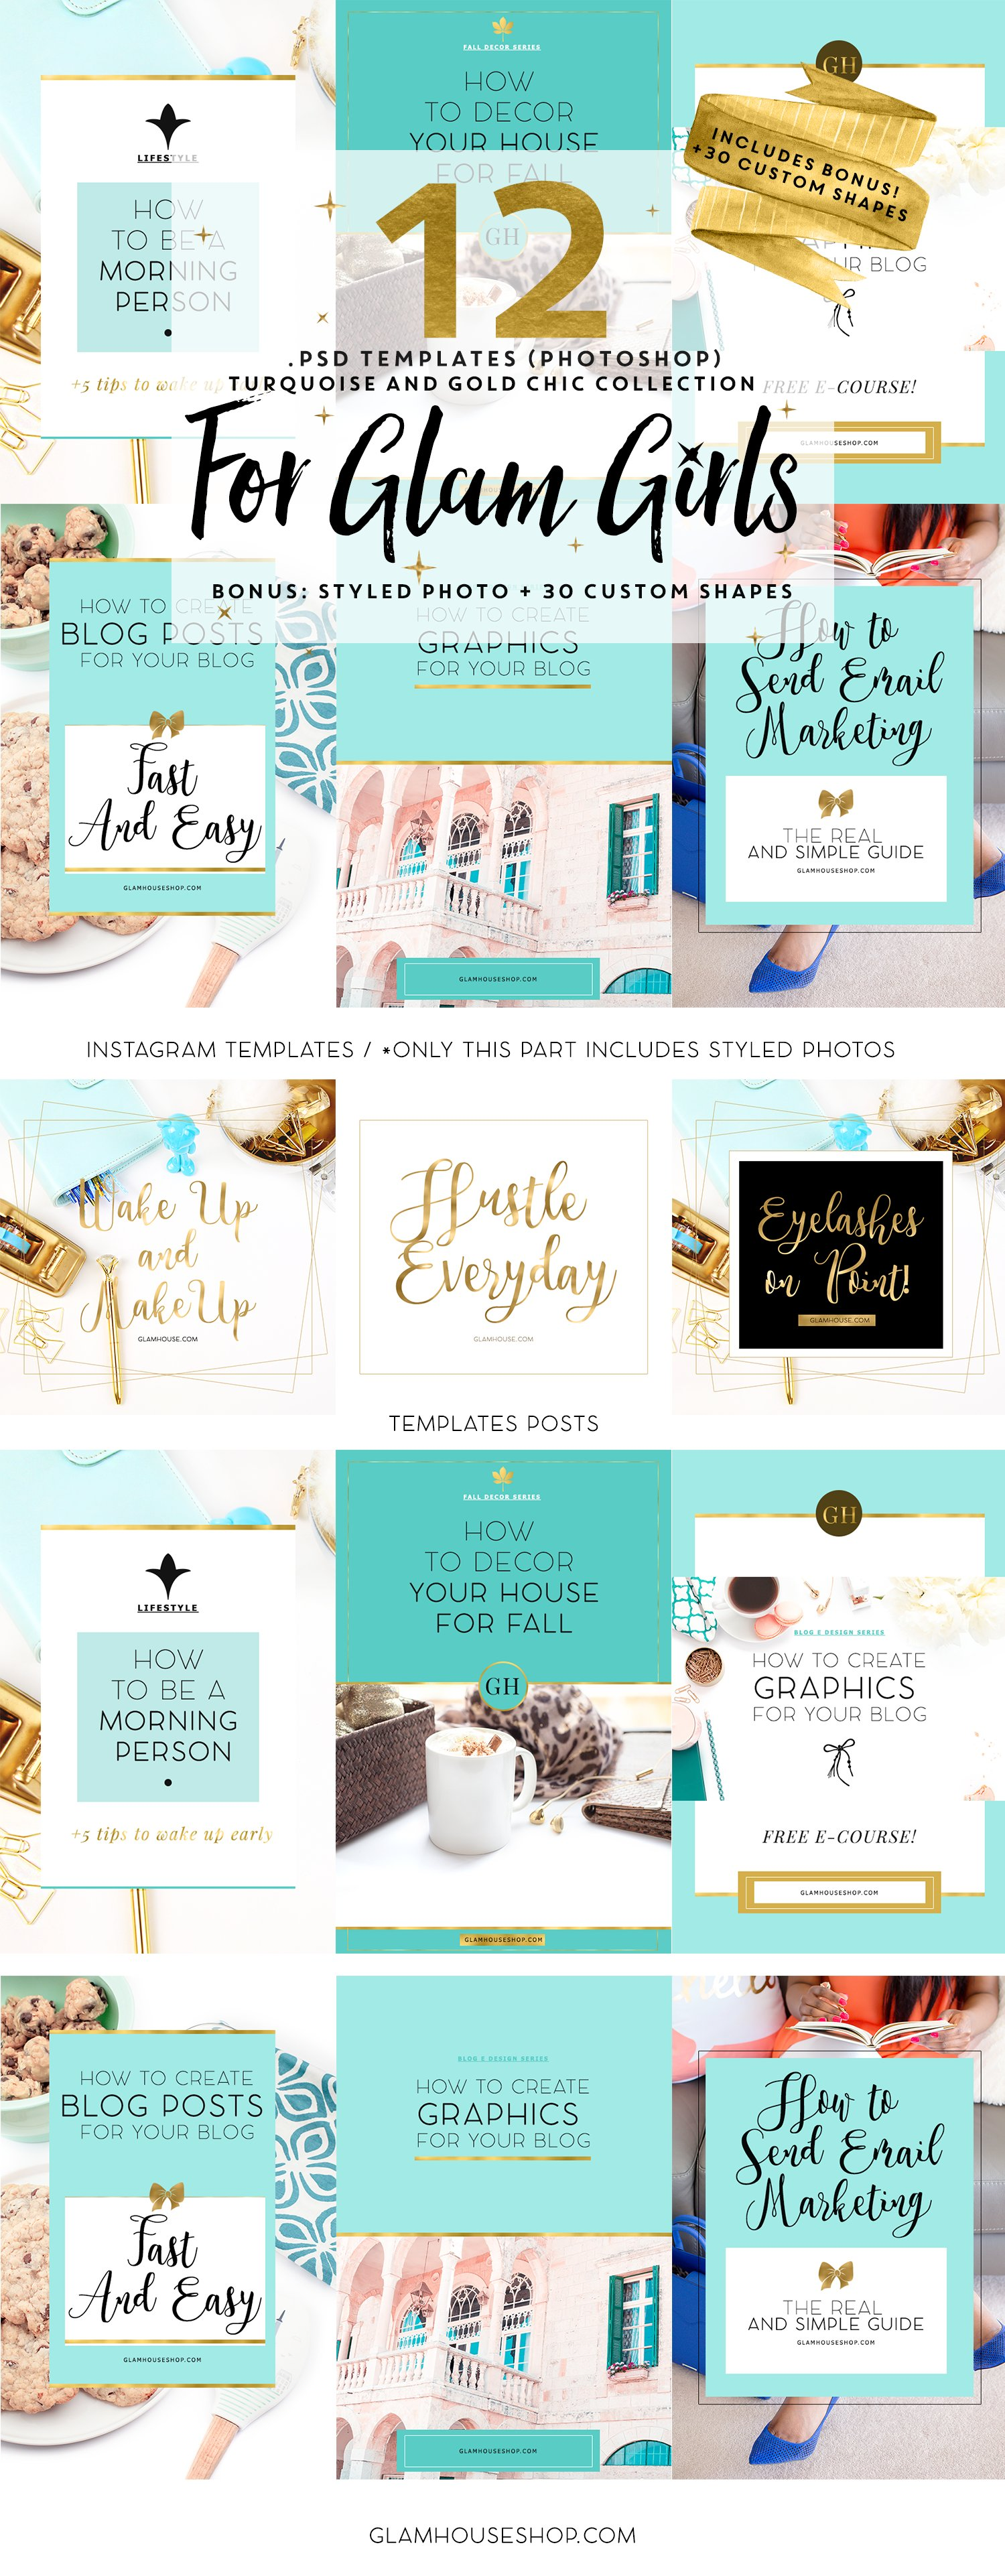 sale 10 12 templates for glam girls social media templates